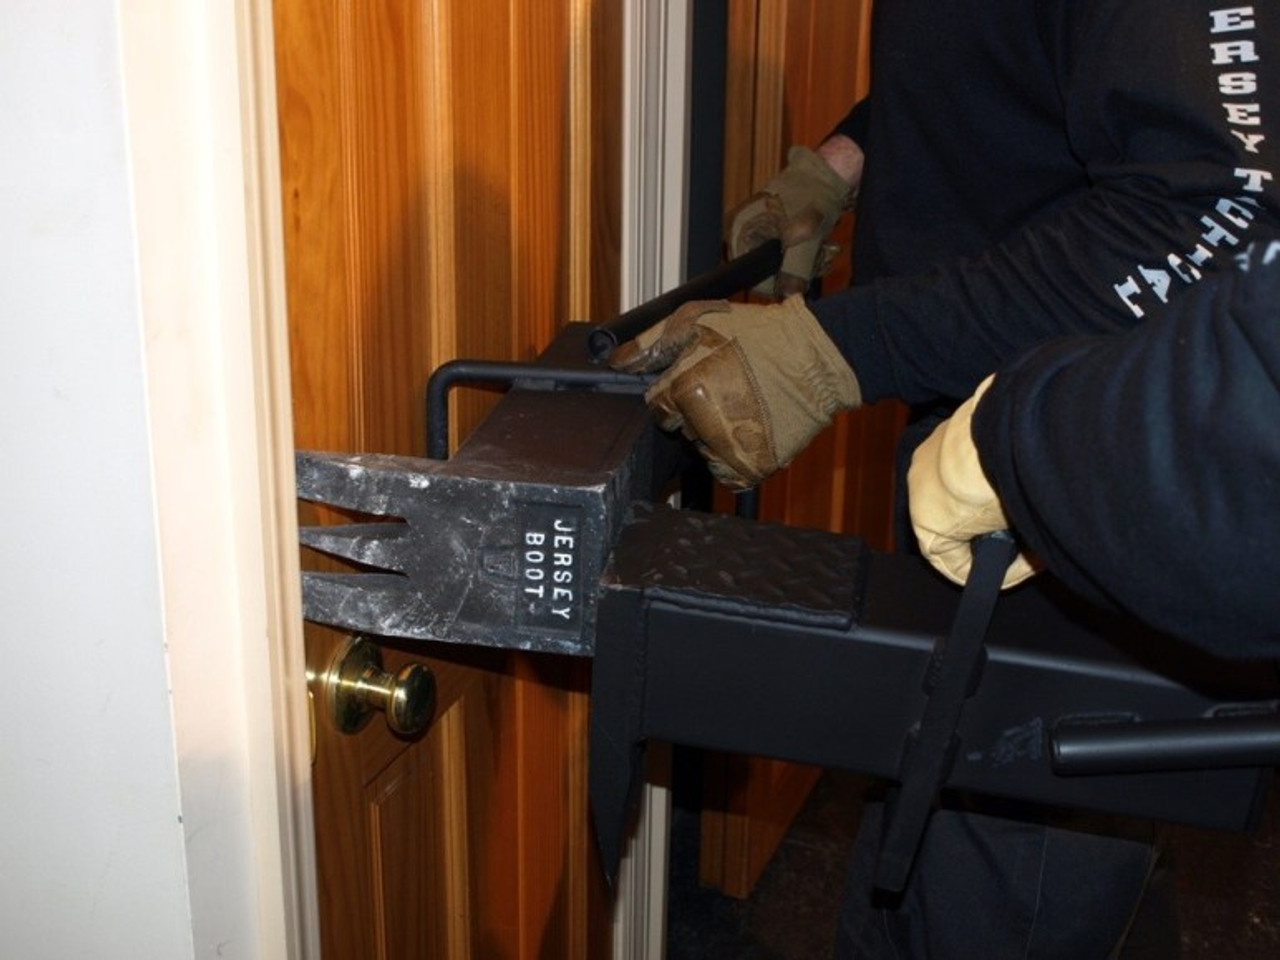 Jersey Tactical JB 1009-1 Jersey Boot Forcible Entry Tool is engineered to pry open virtually any door including Class 3 steel doors with a steel jamb installed in block or concrete.